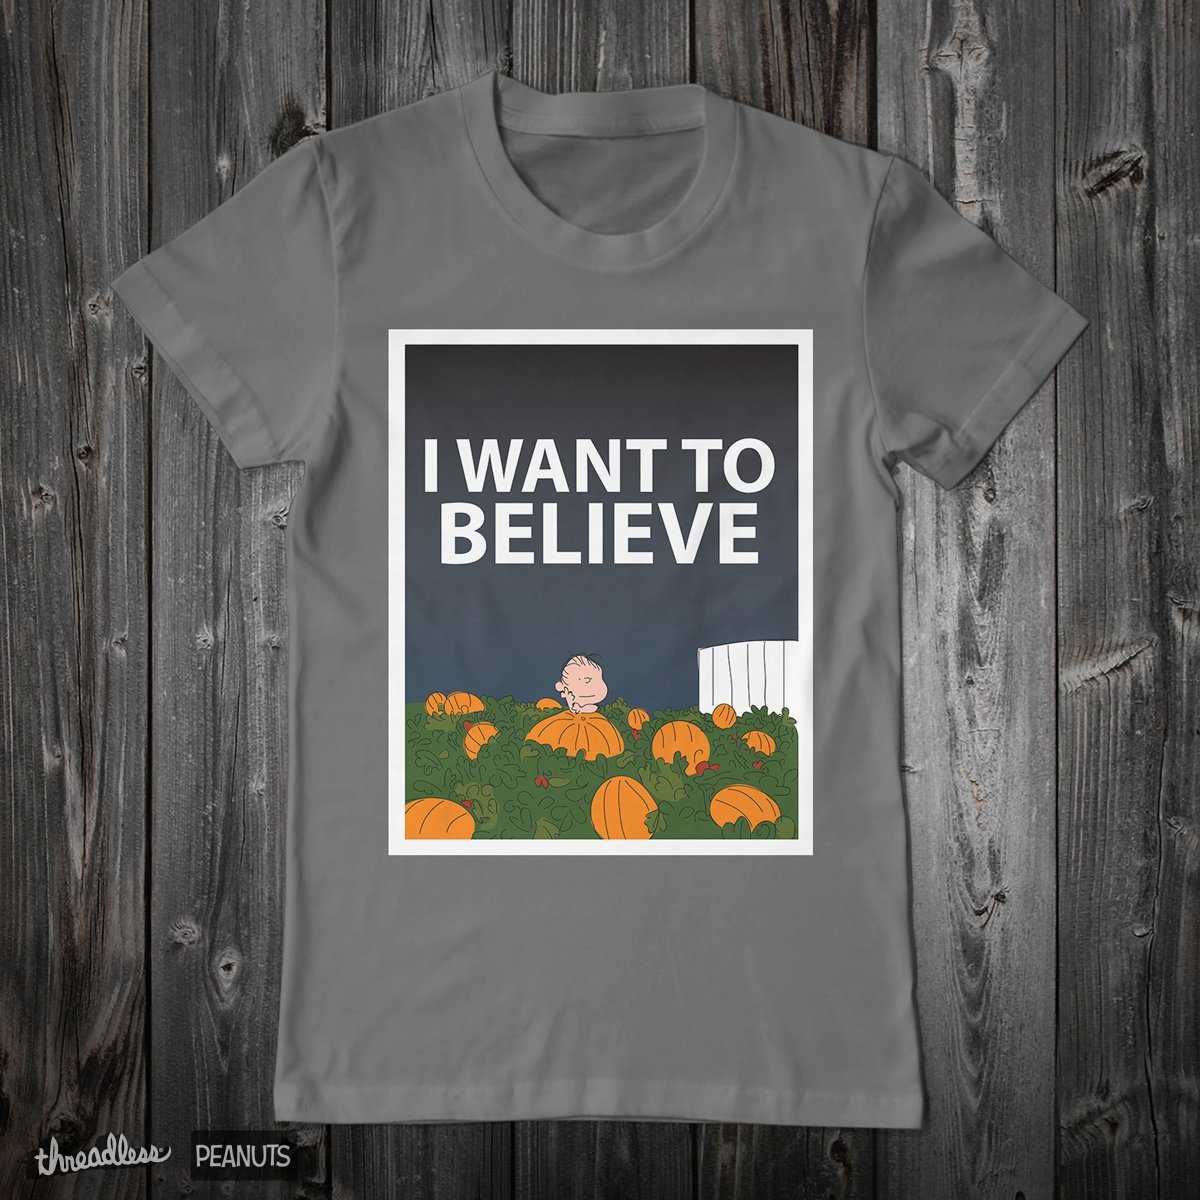 I Want To Believe, a cool t-shirt design